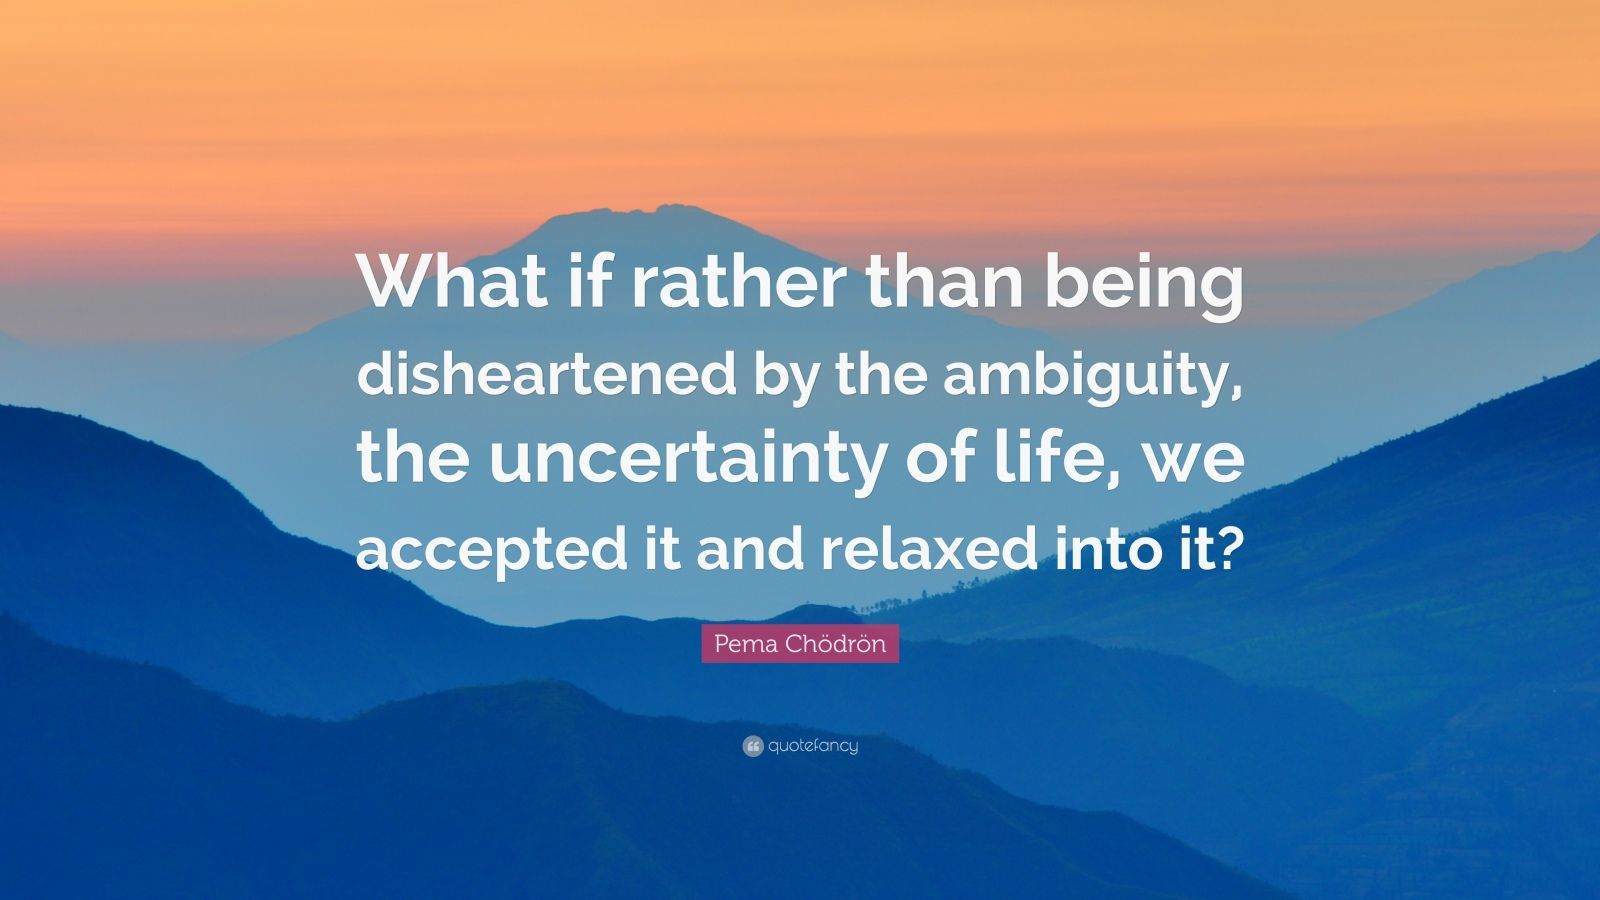 """Pema Chödrön Quote: """"What if rather than being disheartened by the ambiguity, the uncertainty of life, we accepted it and relaxed into it?"""""""